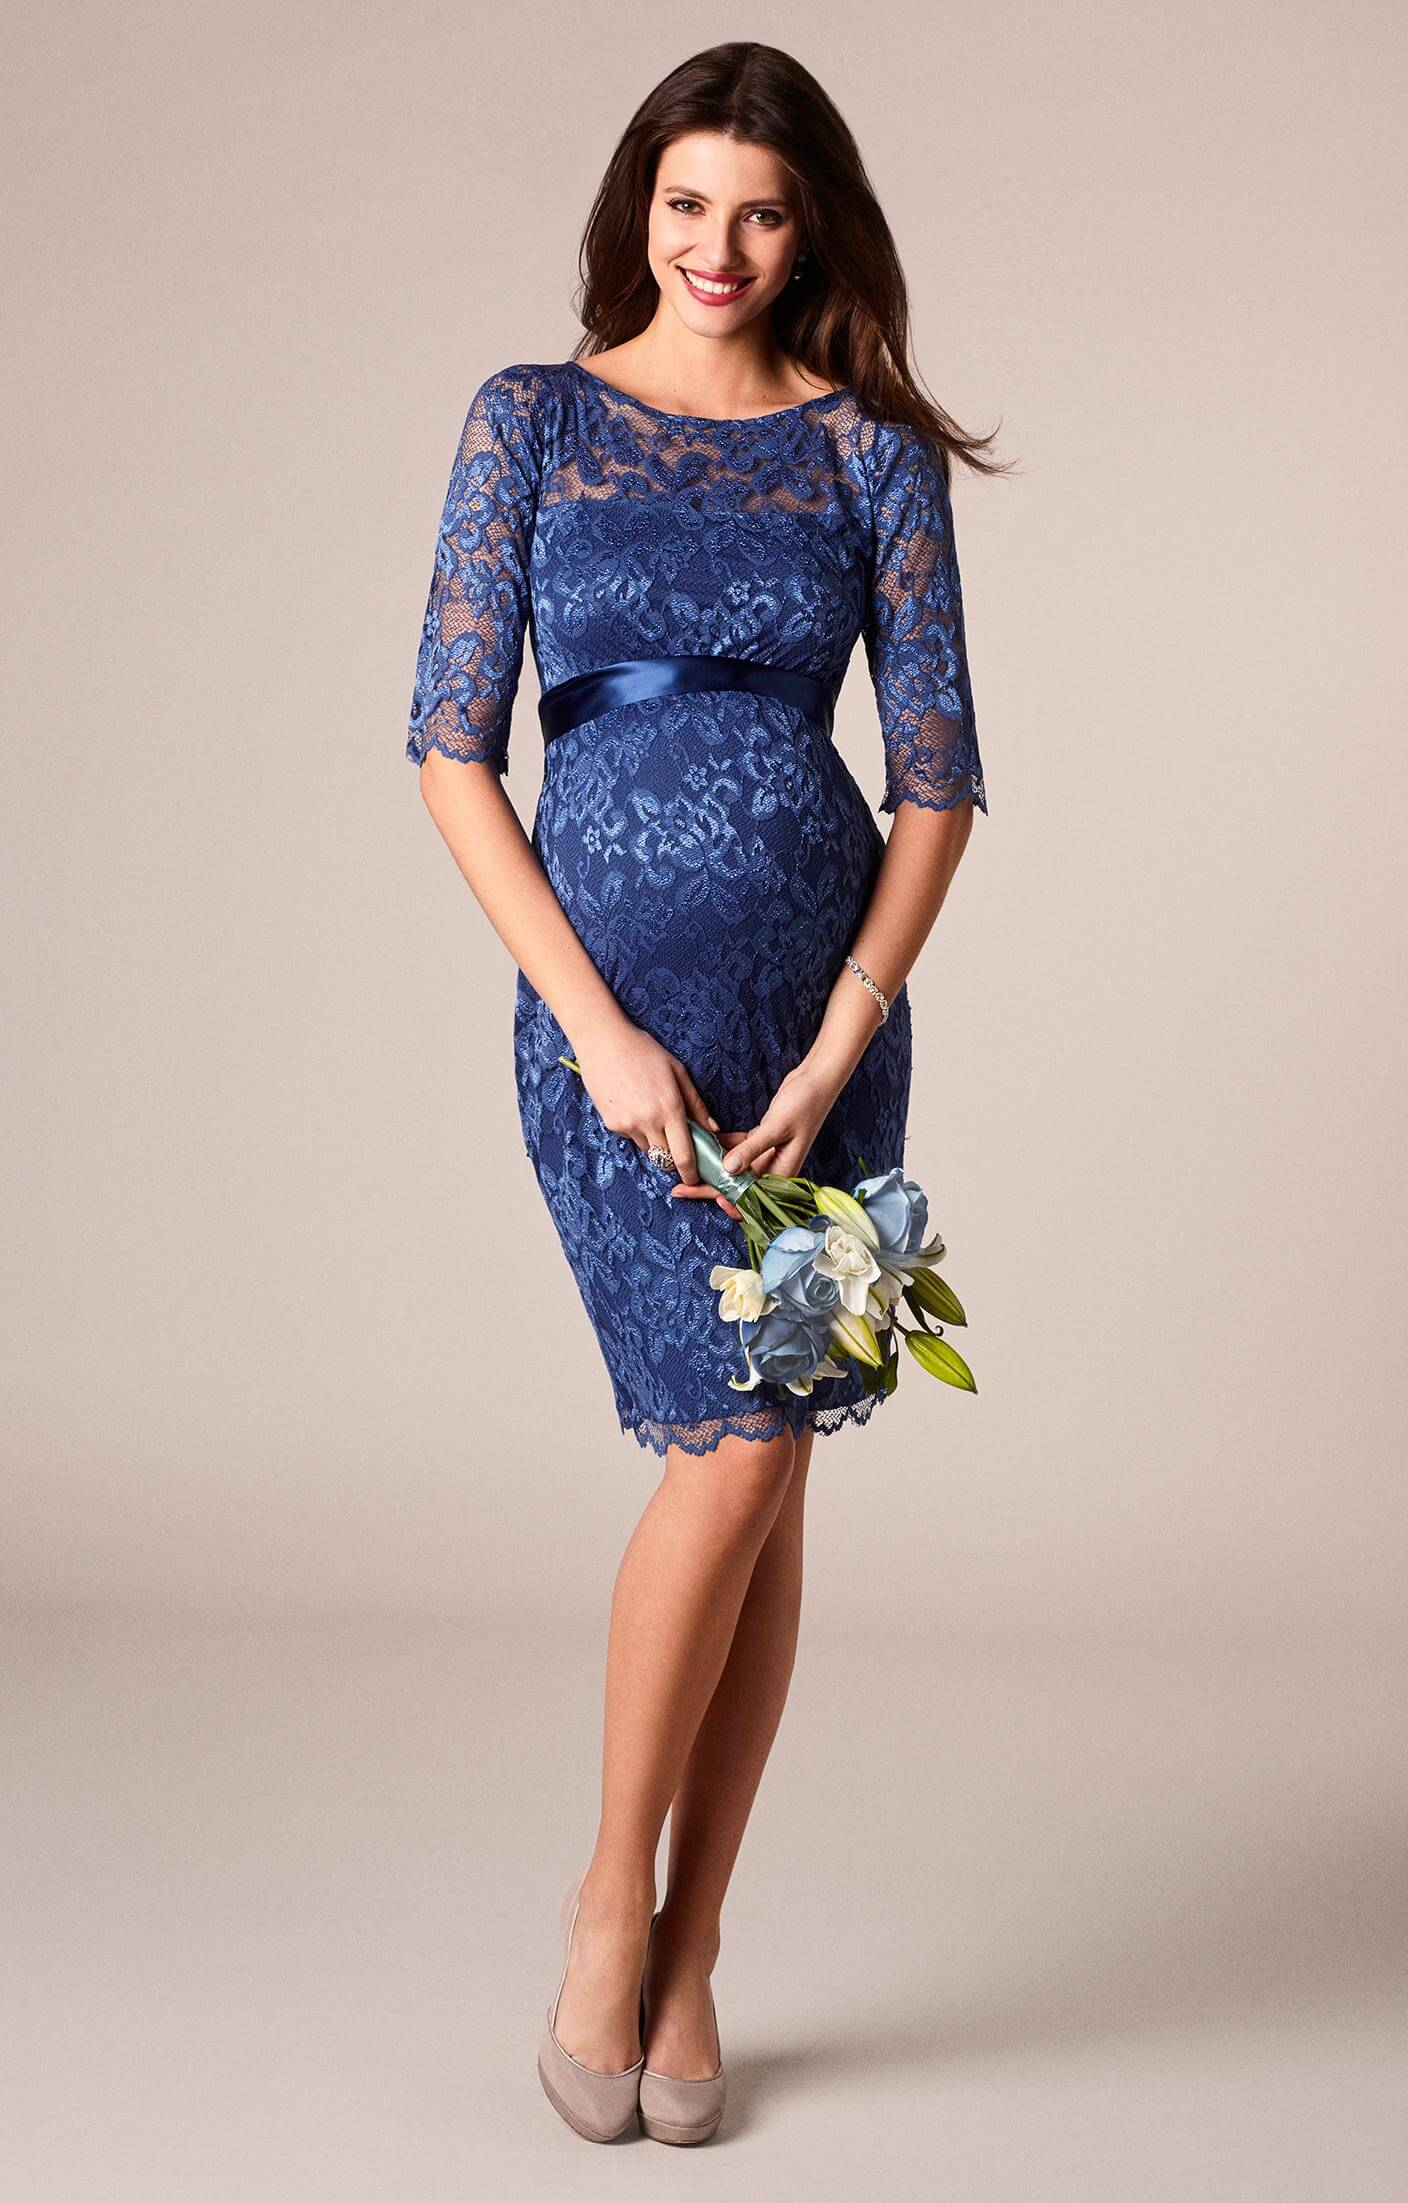 Hot Maternity Dresses